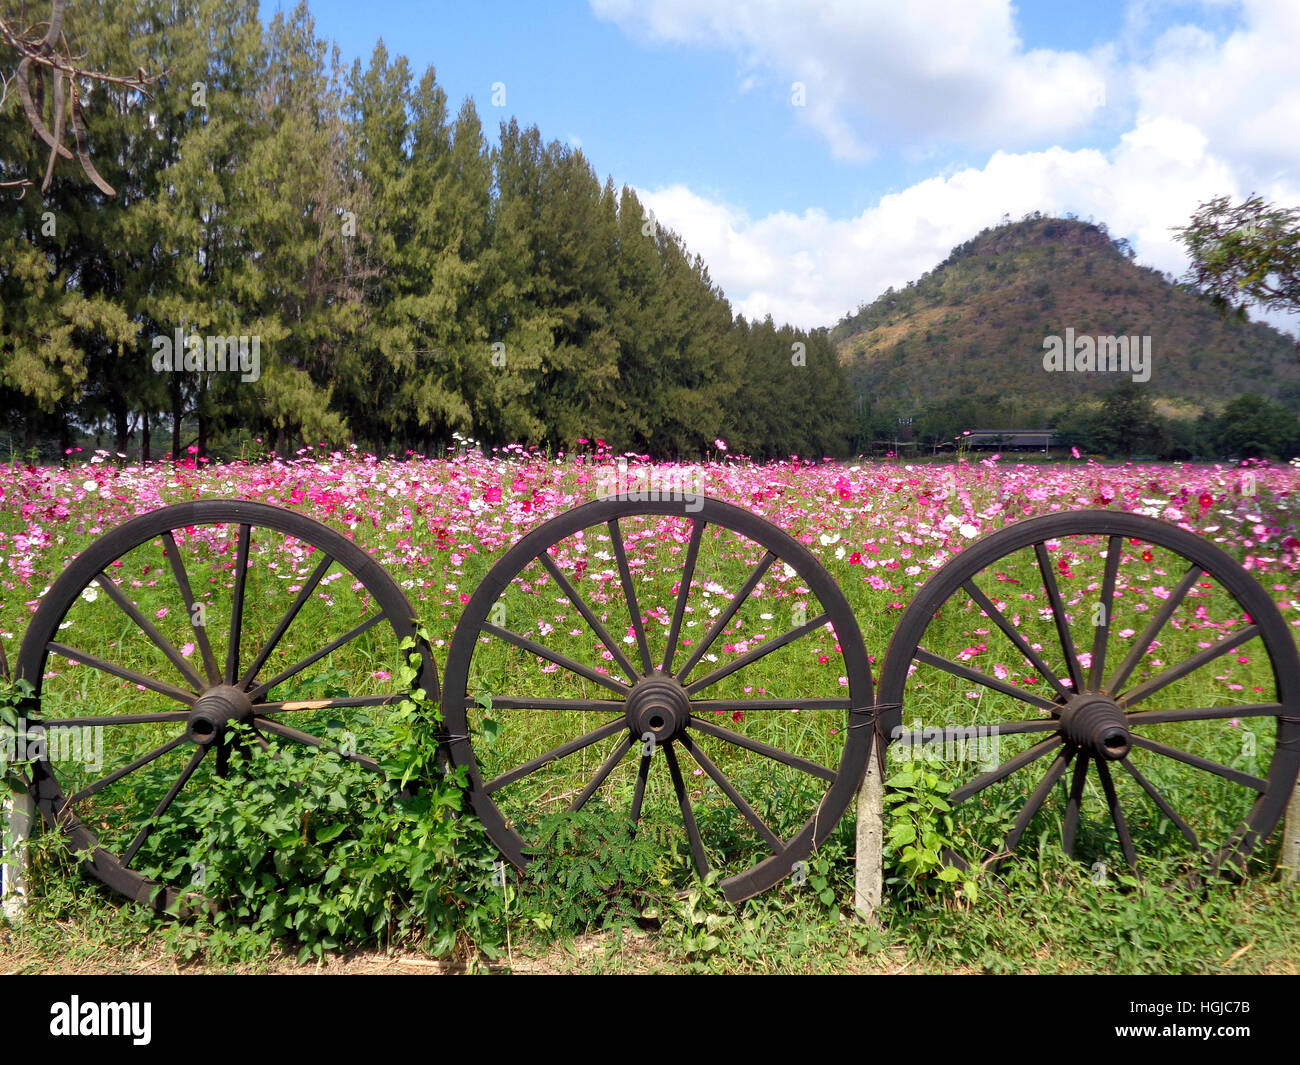 Beautiful Blooming Pink Cosmos Field at the Foothill behind the Unique Wooden Wheel Fence, Thailand - Stock Image